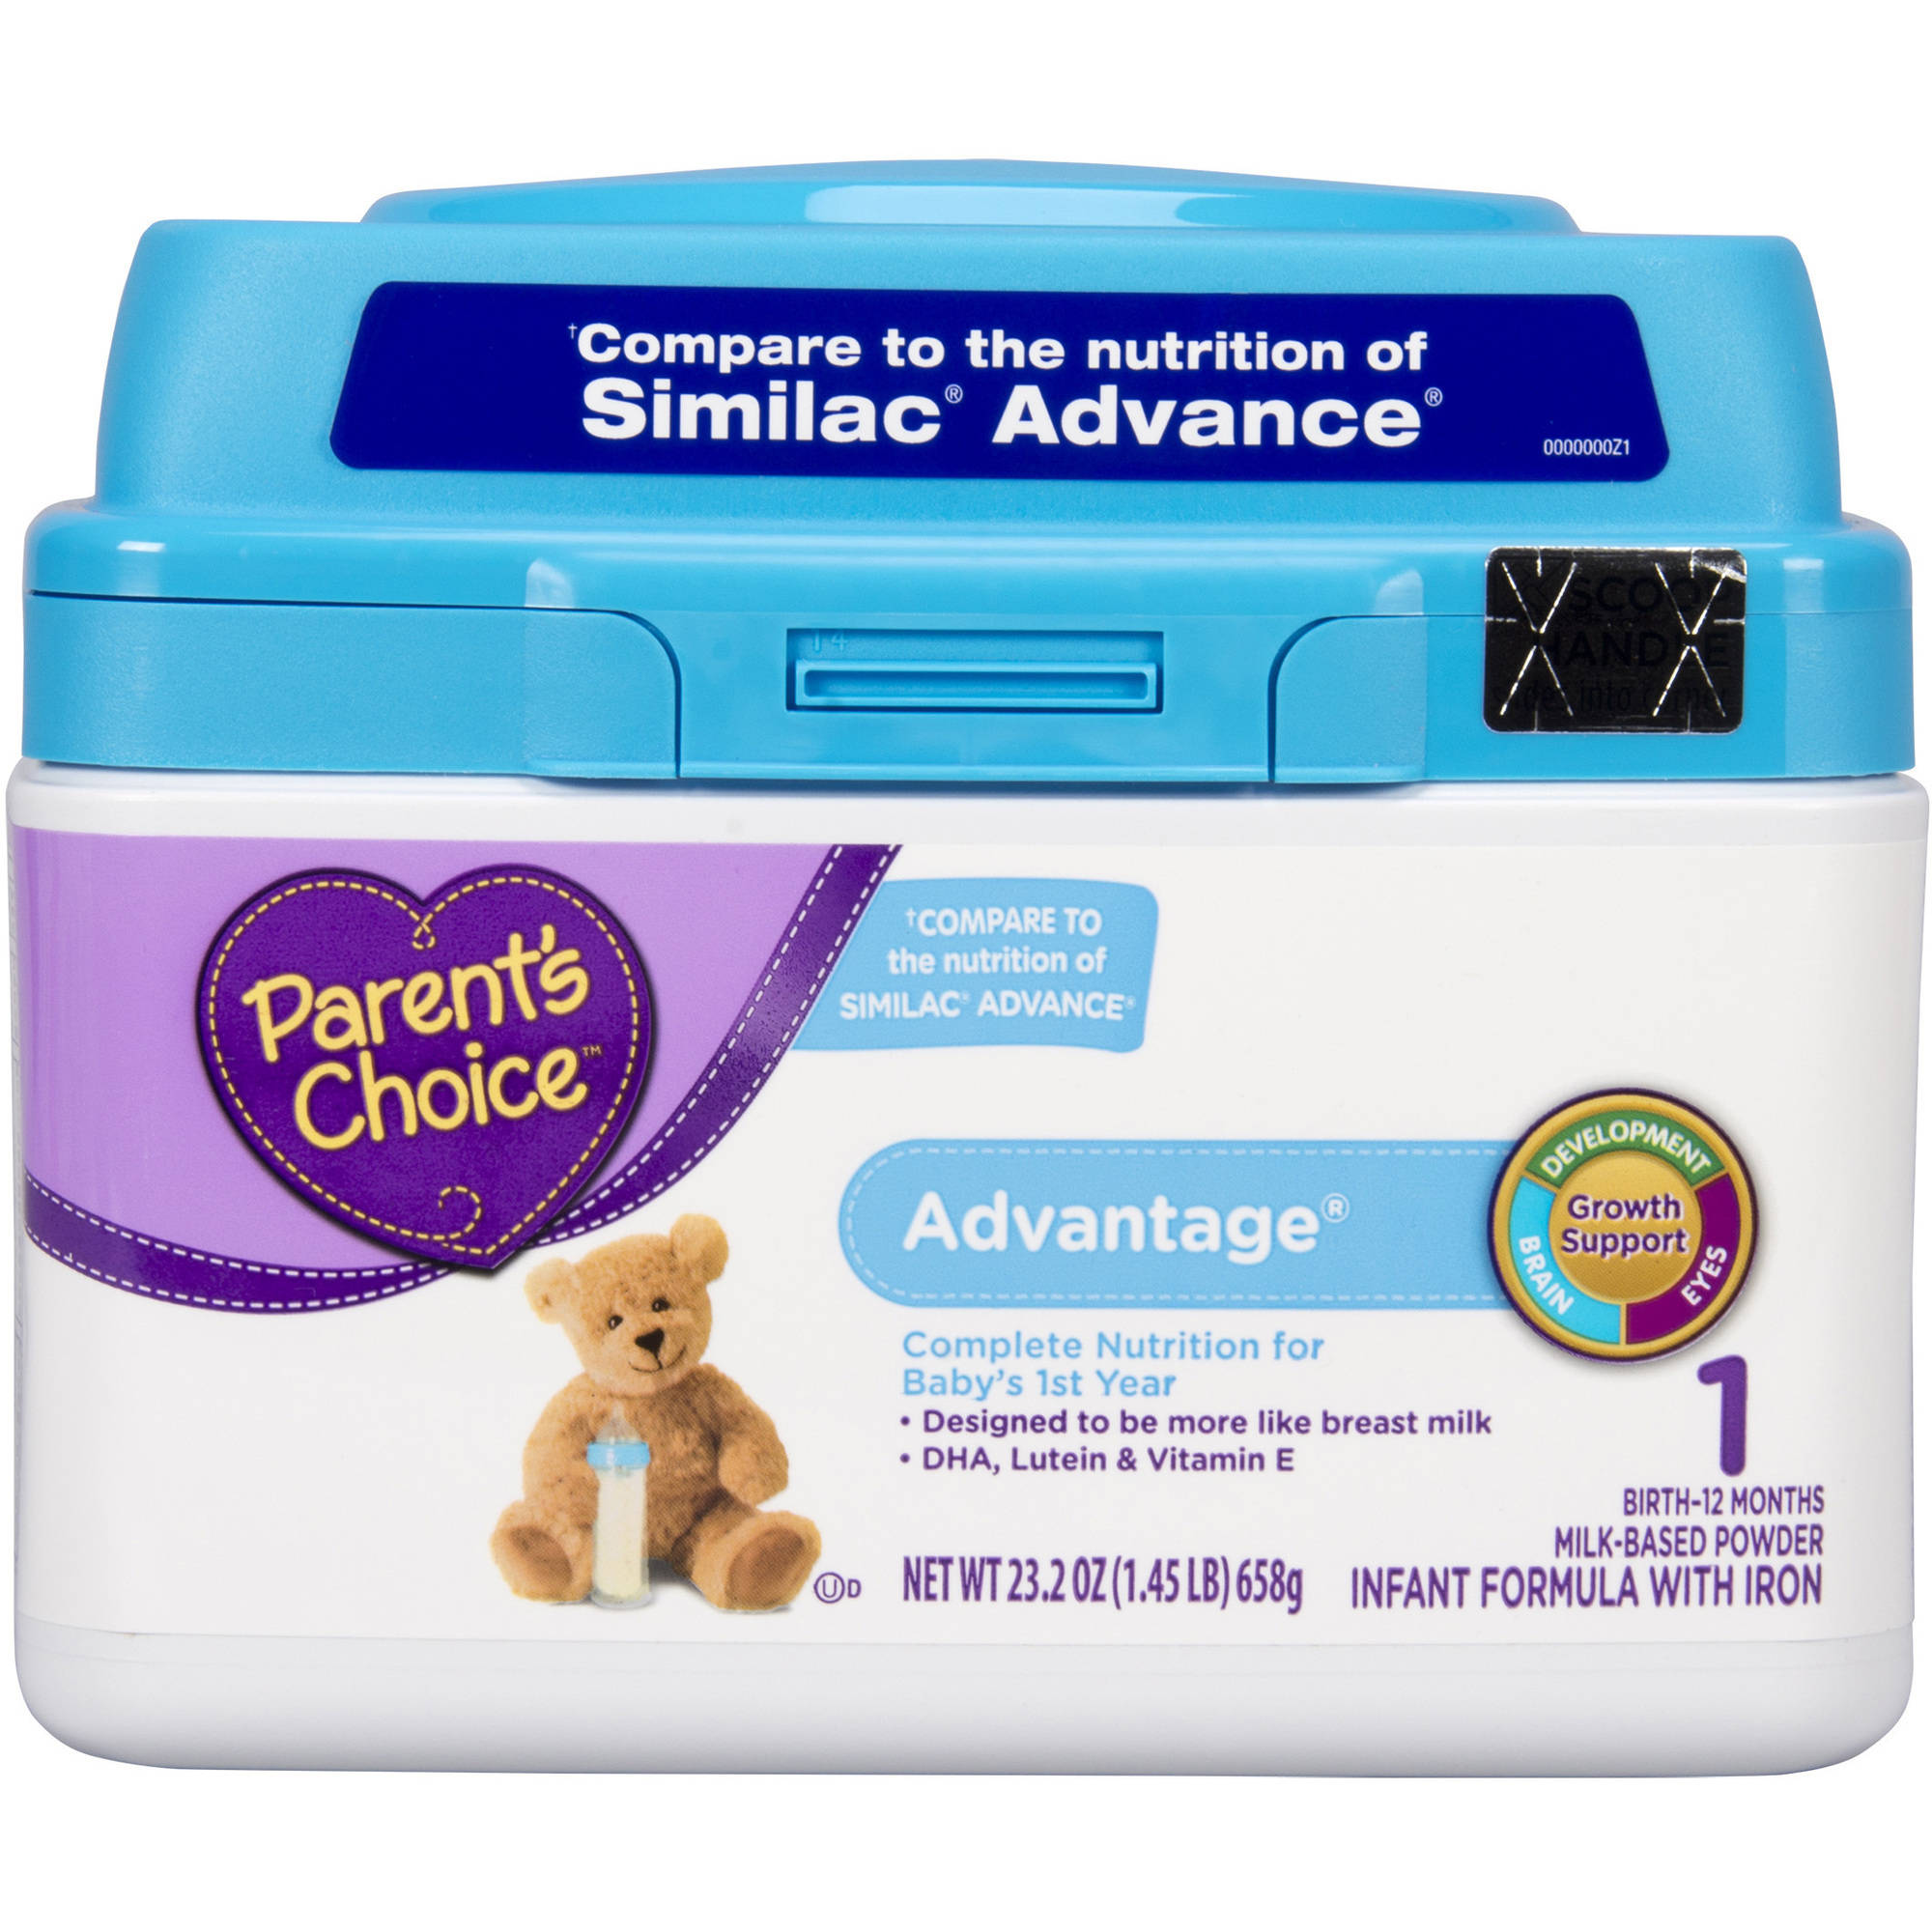 Parent's Choice Advantage Powder Infant Formula with Iron, 23.2oz